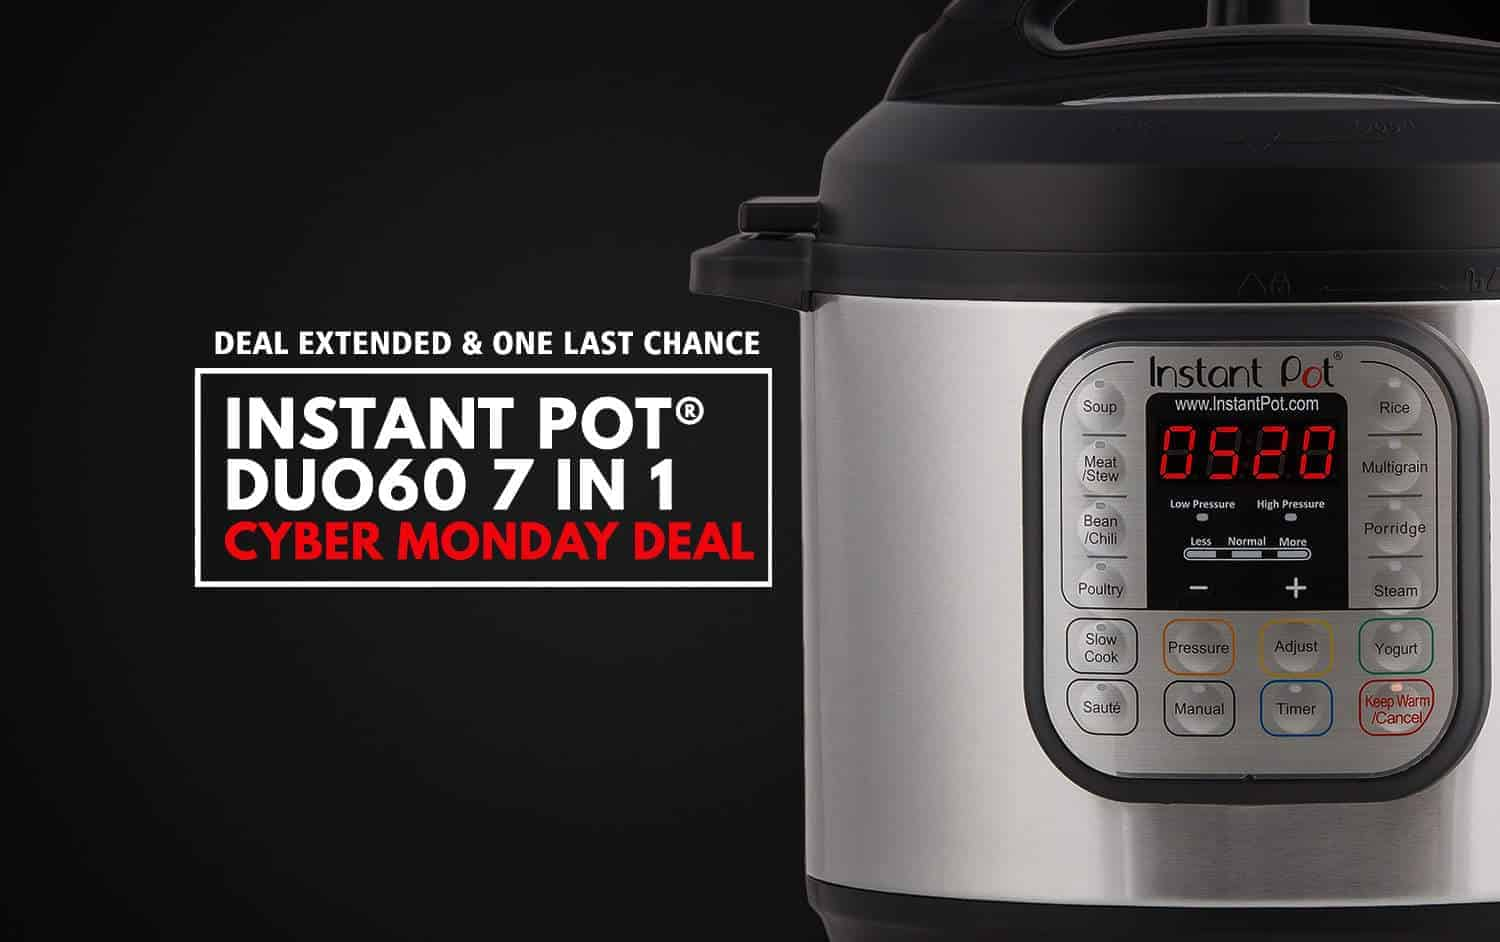 Instant Pot Cyber Monday Deal - Instant Pot Duo60 7-in-1 Programmable Electric Pressure Cooker